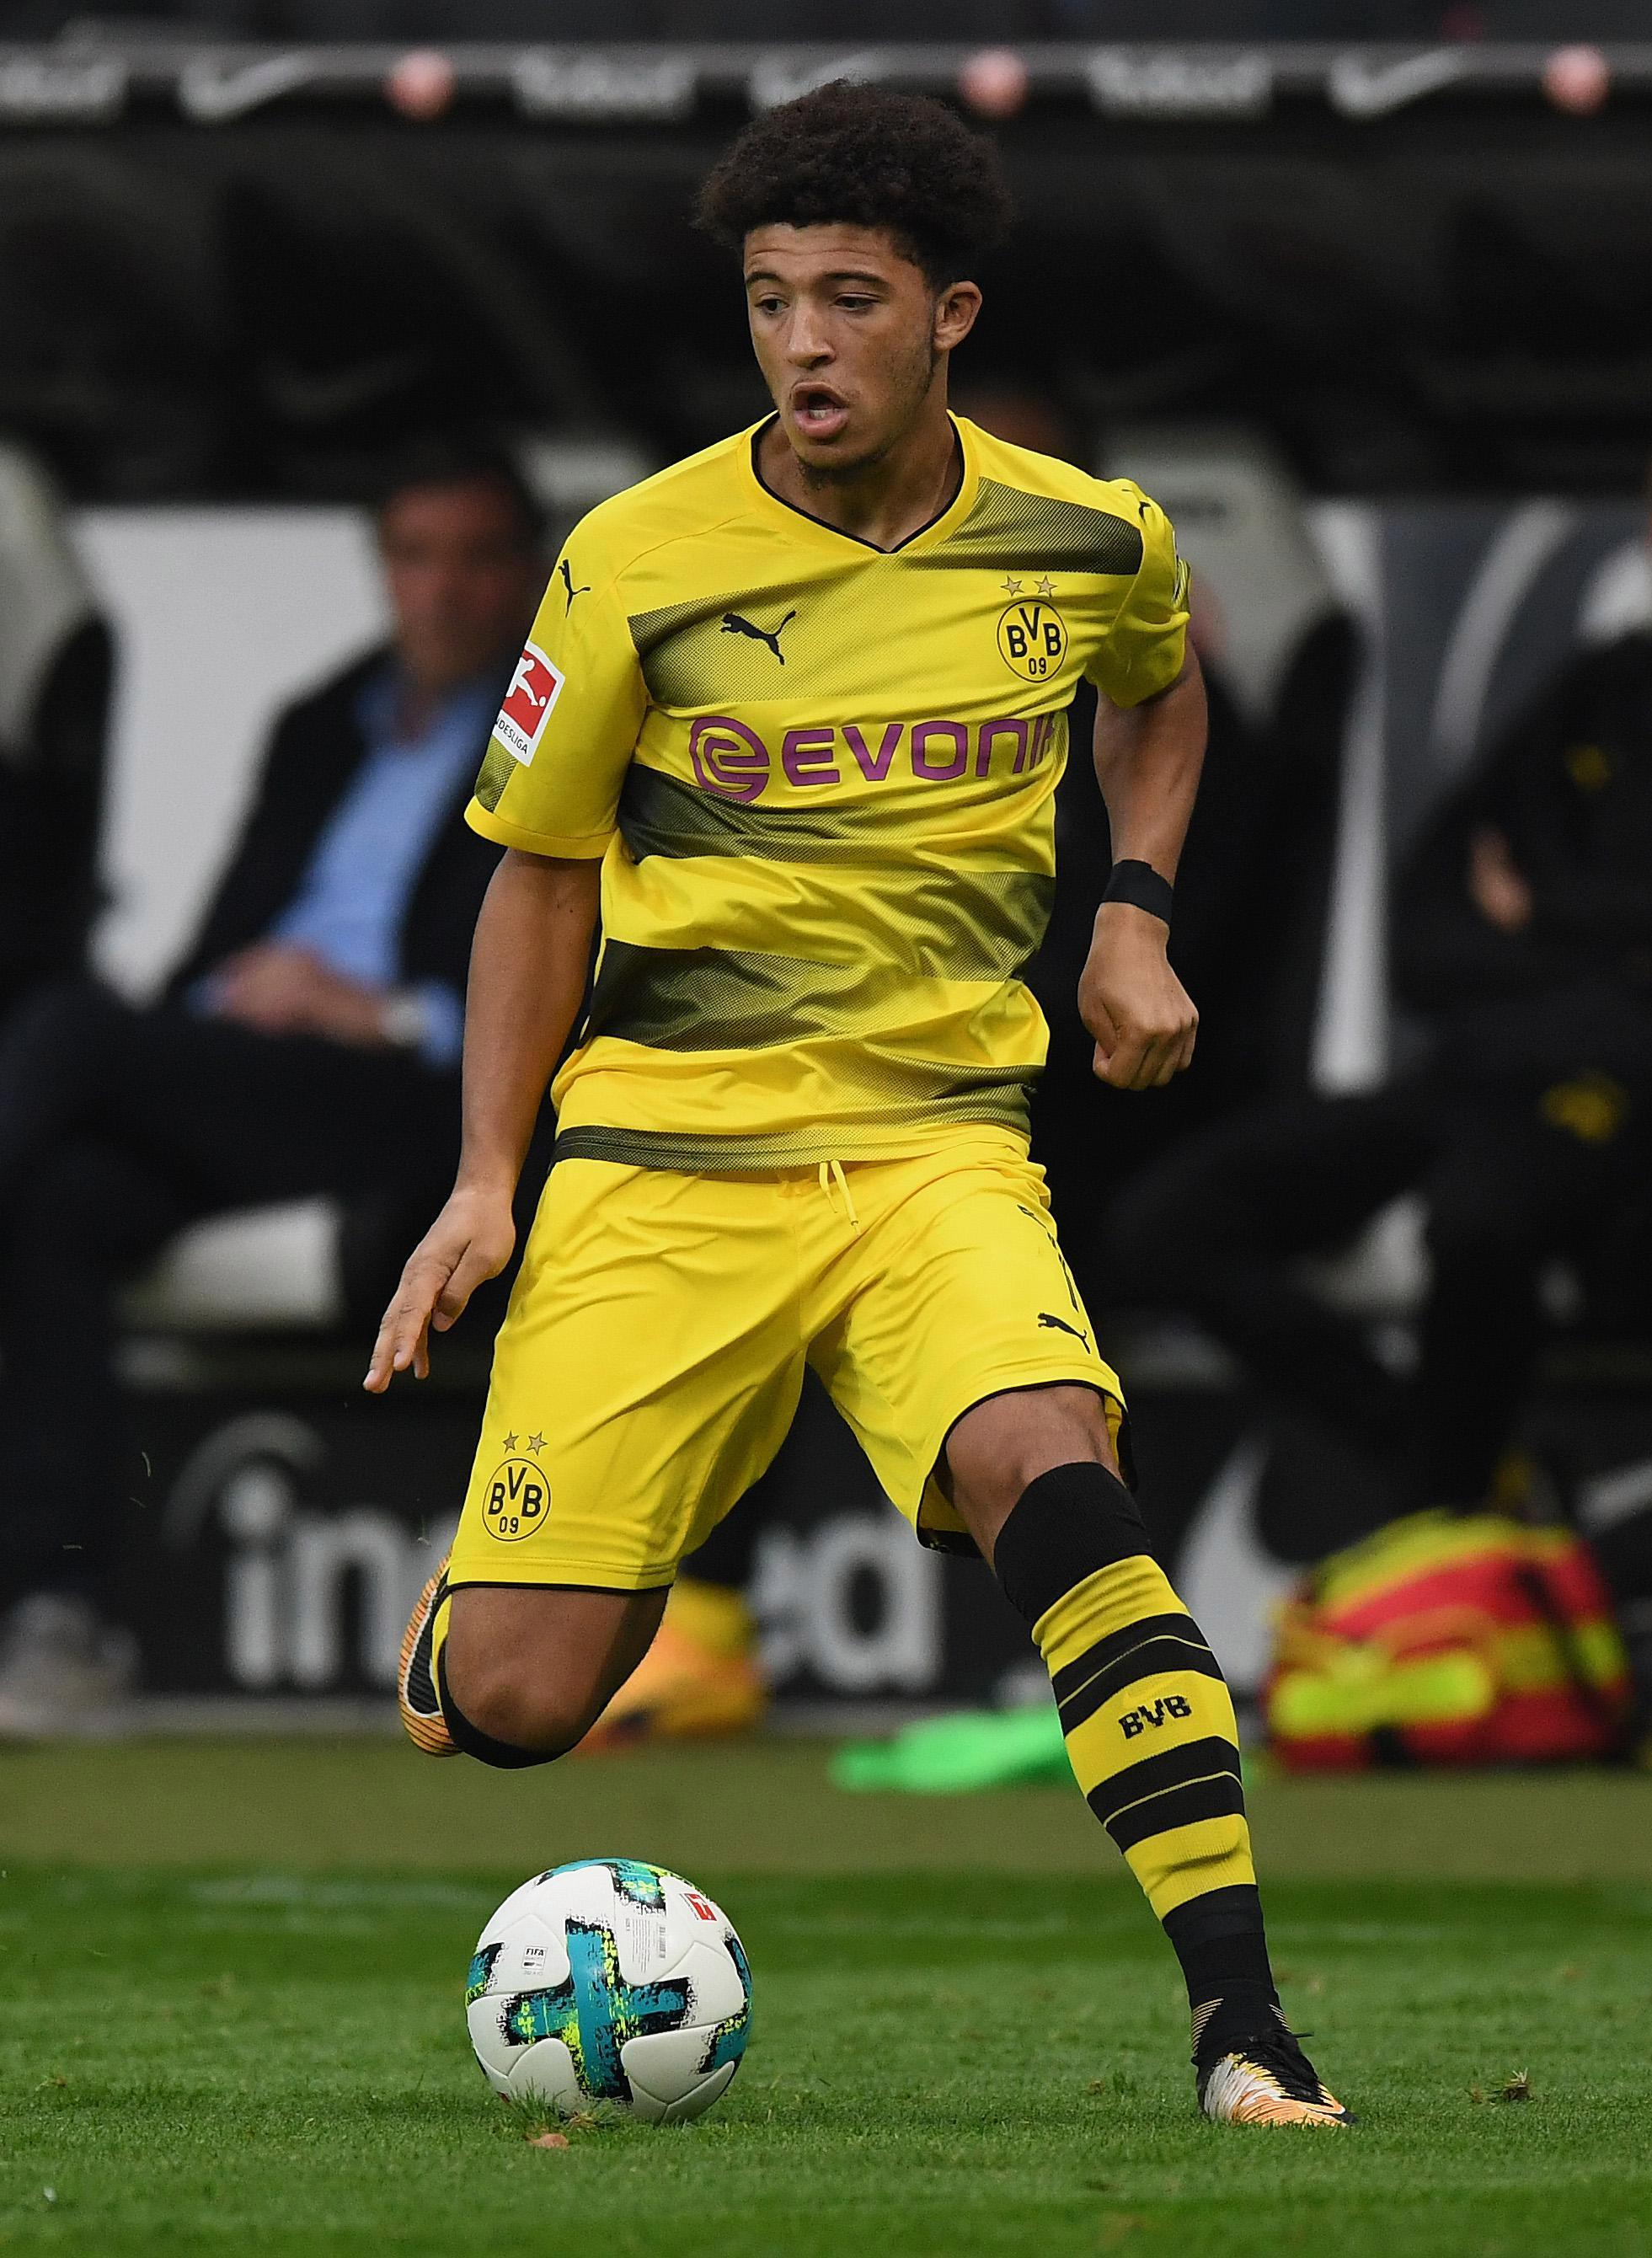 Jadon Sancho has made one senior appearance for Dortmund, off the bench